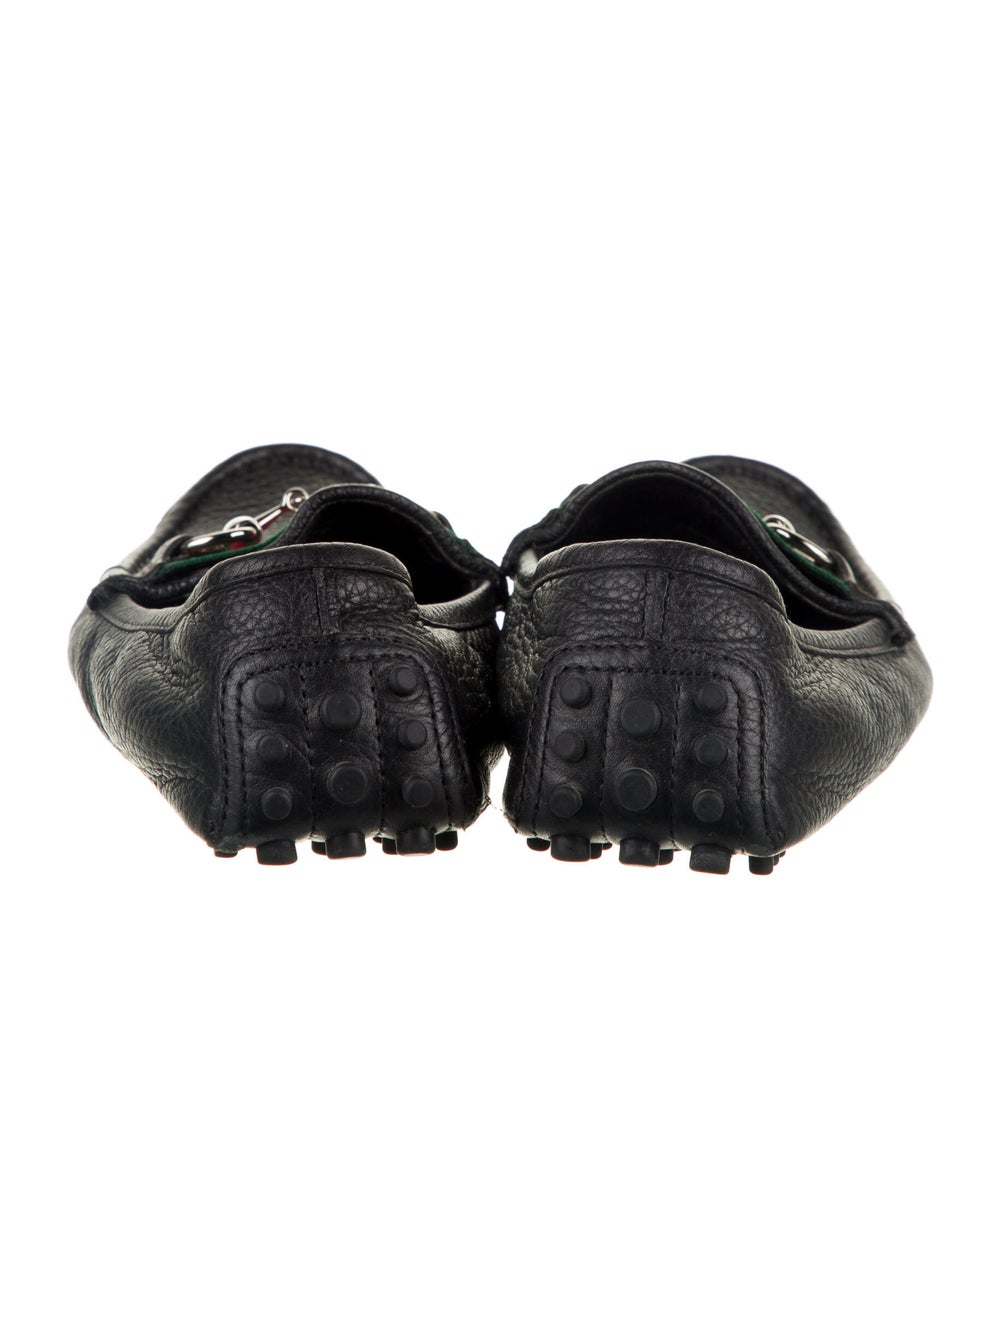 Gucci Web Accent Leather Loafers Black - image 4